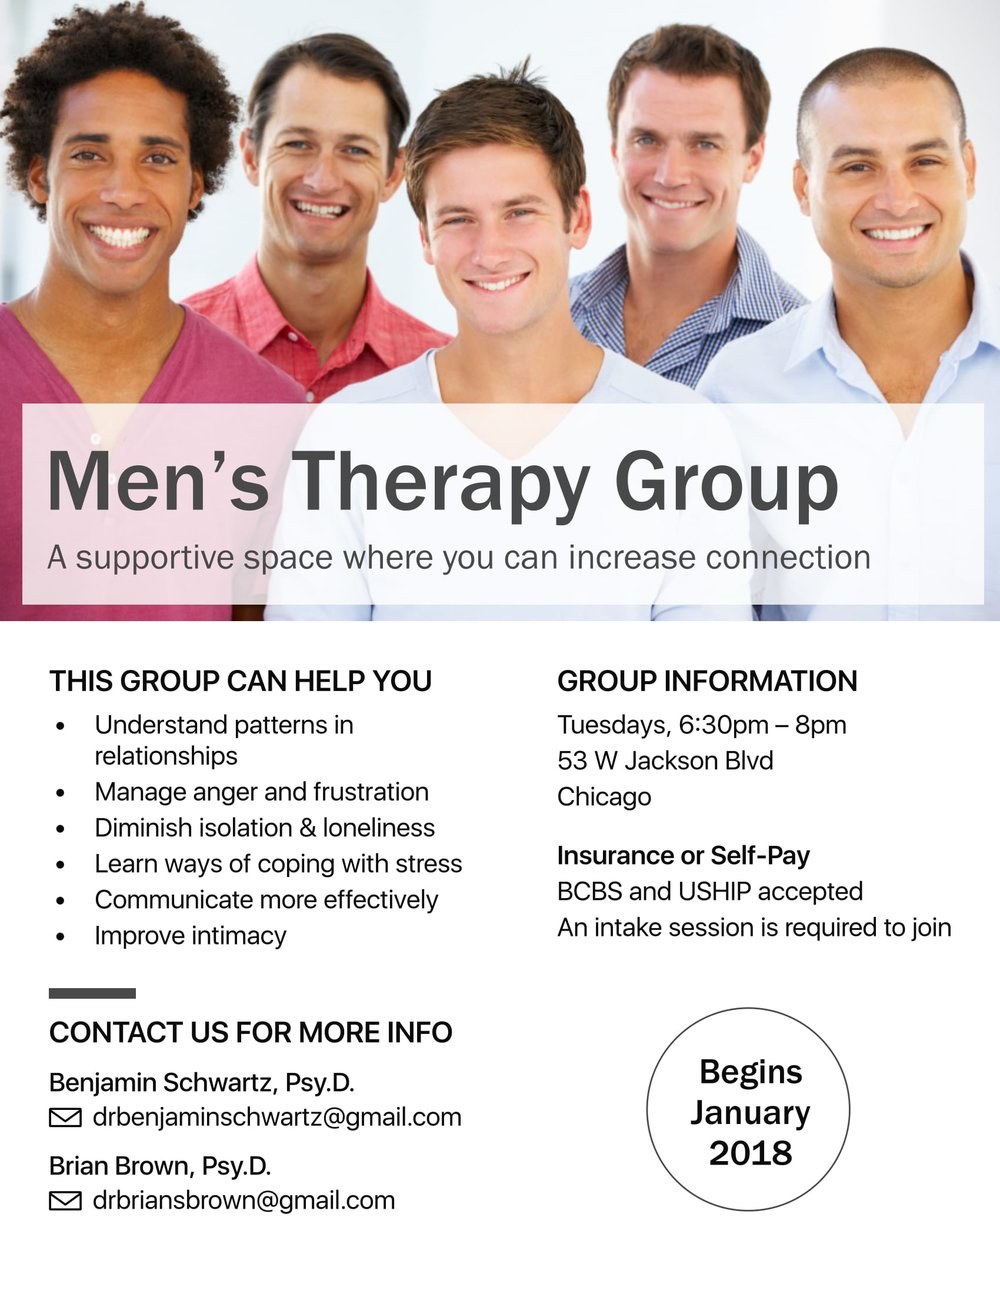 Men's Therapy Group-1.jpg